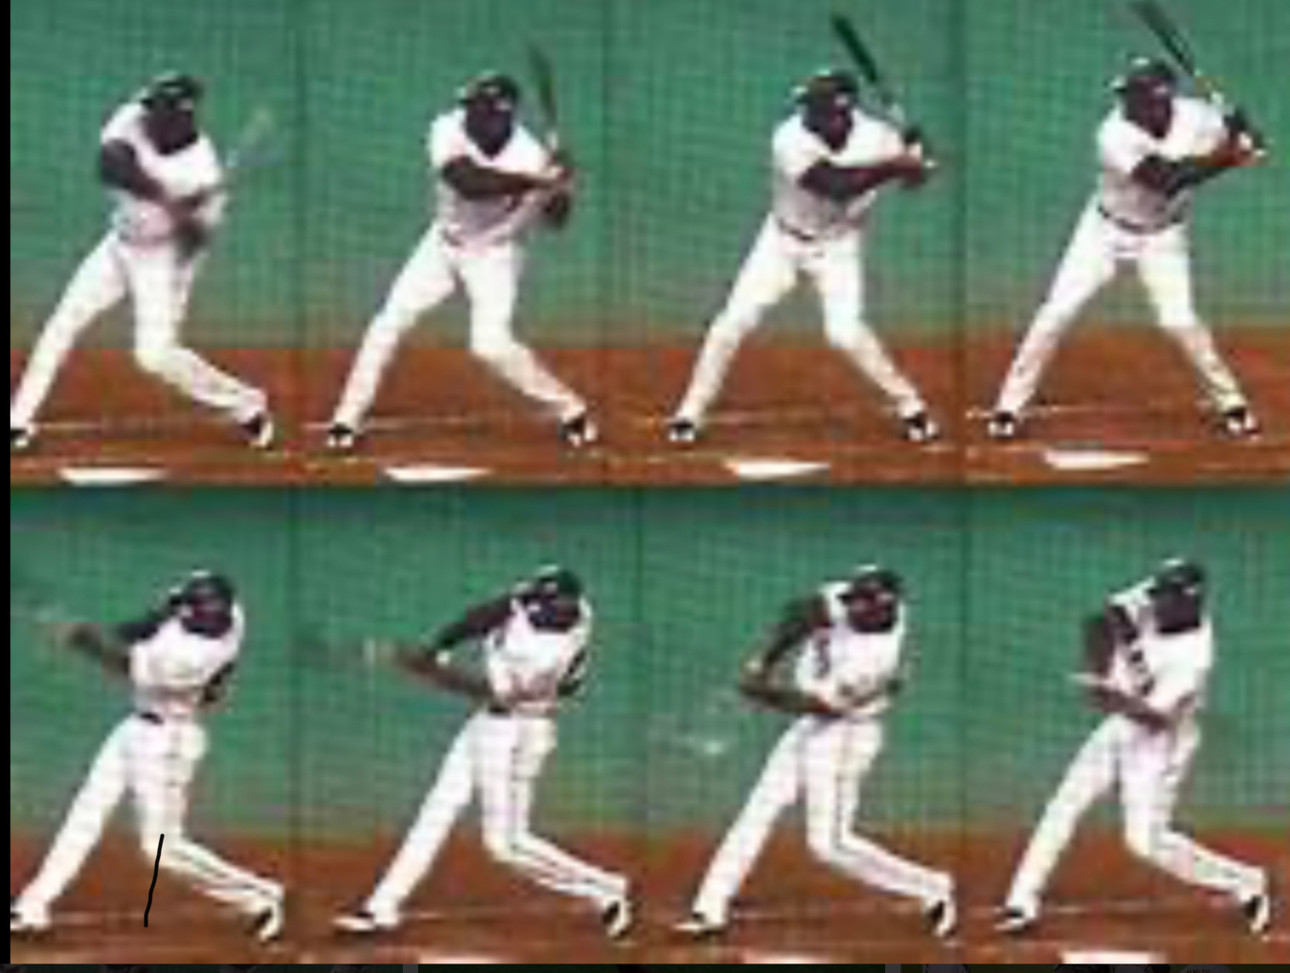 Barry Bonds swing sequence